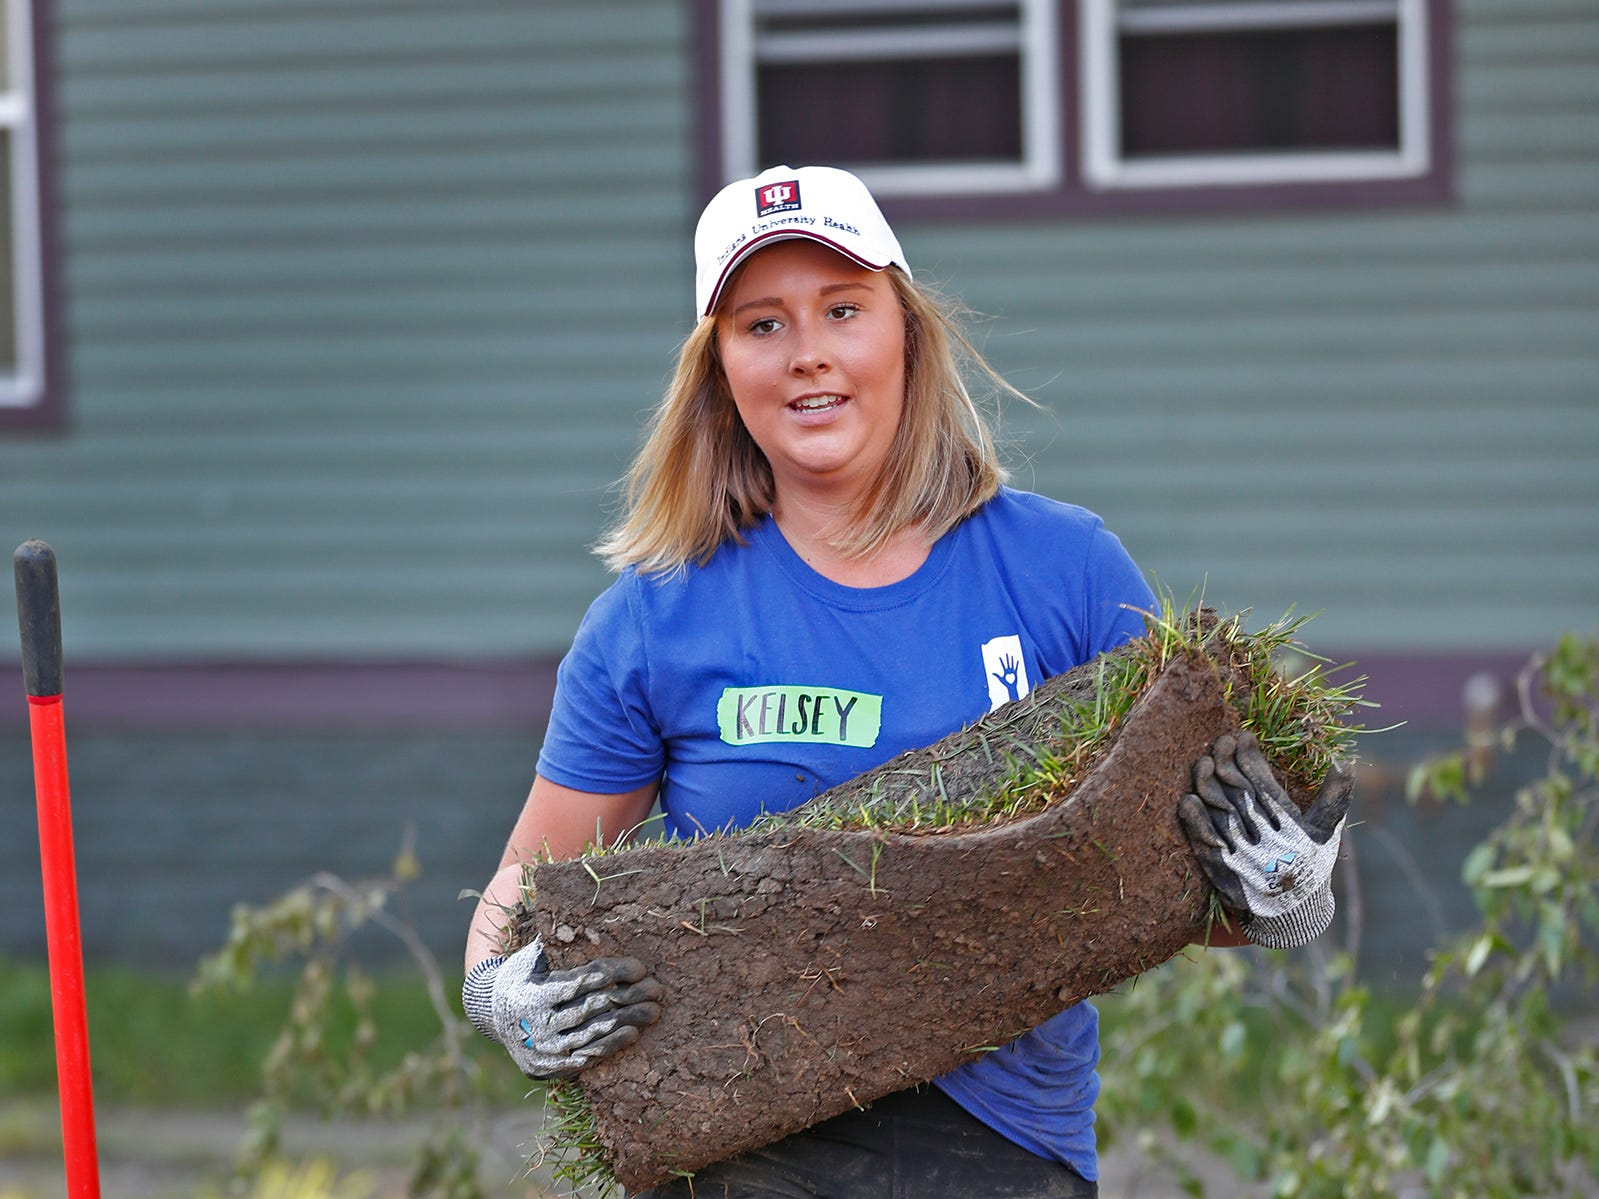 Kelsey Miller carries sod to place on the front lawn of a home  during the 10th Annual IU Health Day of Service, Friday, Sept. 13, 2018.  IU Health team members donated time and effort building and finishing a Habitat for Humanity home in the 3700 block of Kenwood Ave. For 22 days, with partner volunteers, over 250 members of the IU Health team have donated more than 1680 hours at the house that will become the new home for the Ndatira family.